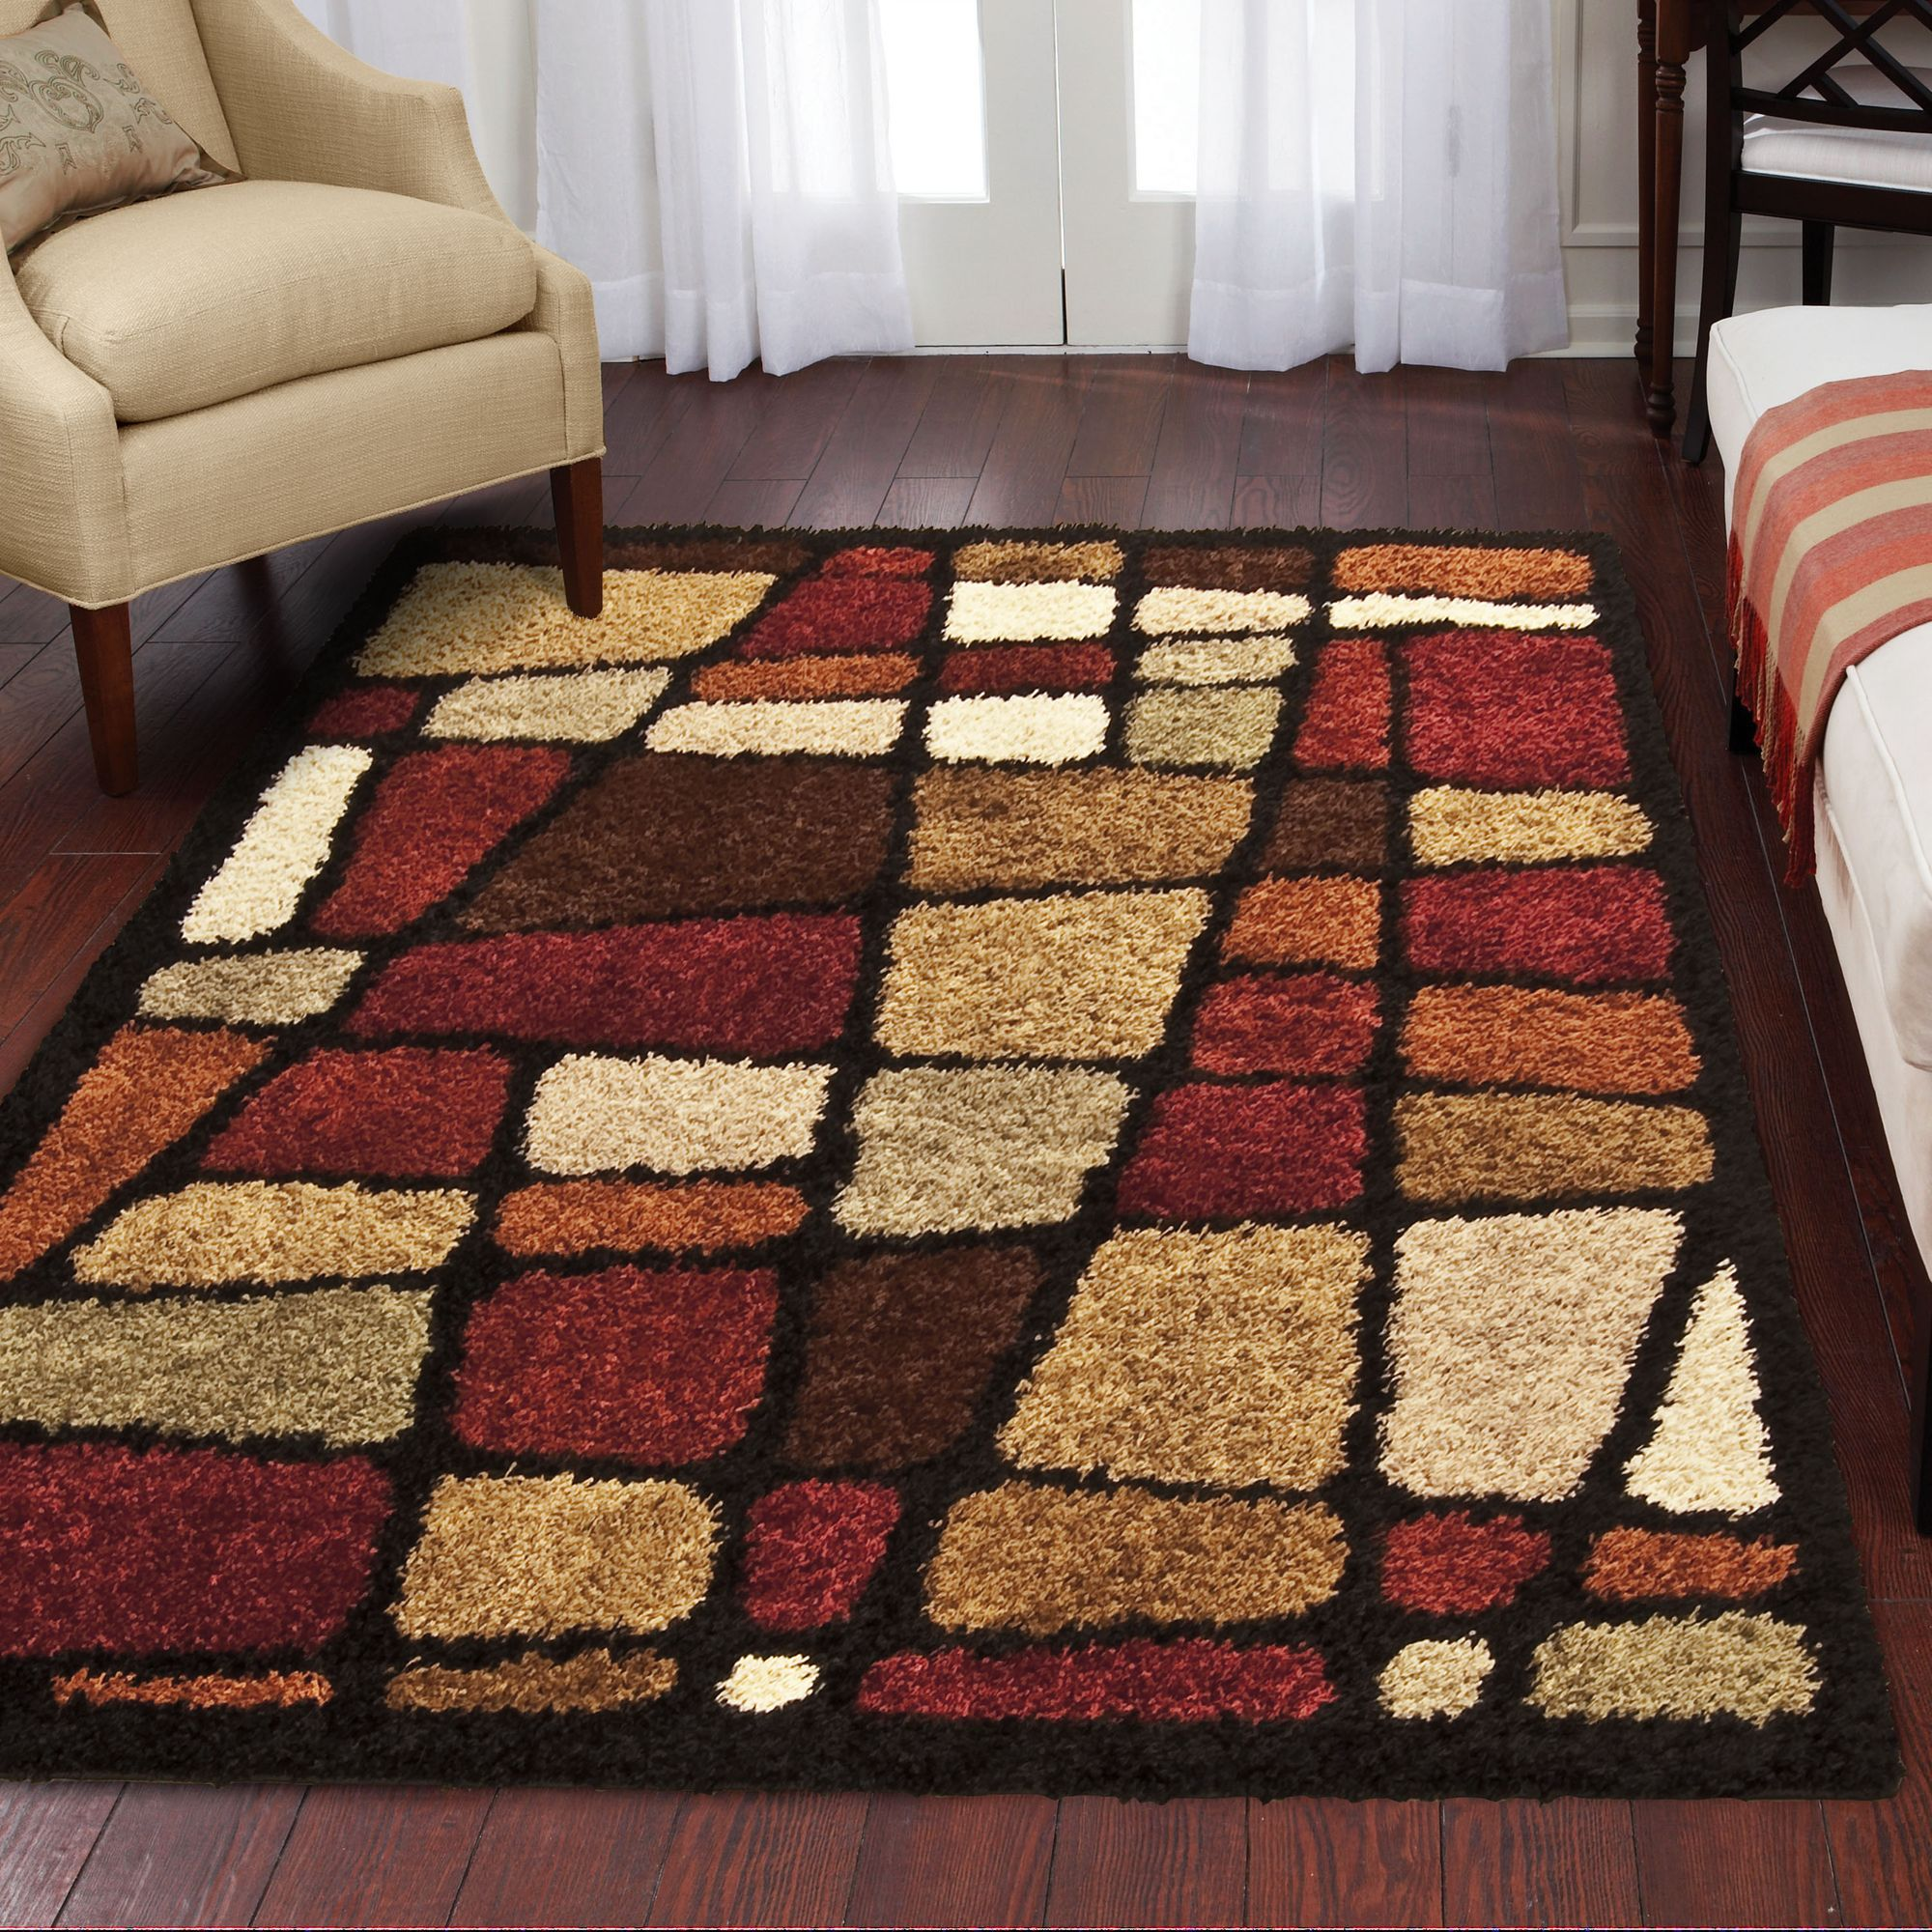 Area Rug With Images Area Rugs Rugs In Living Room Shag Area Rug